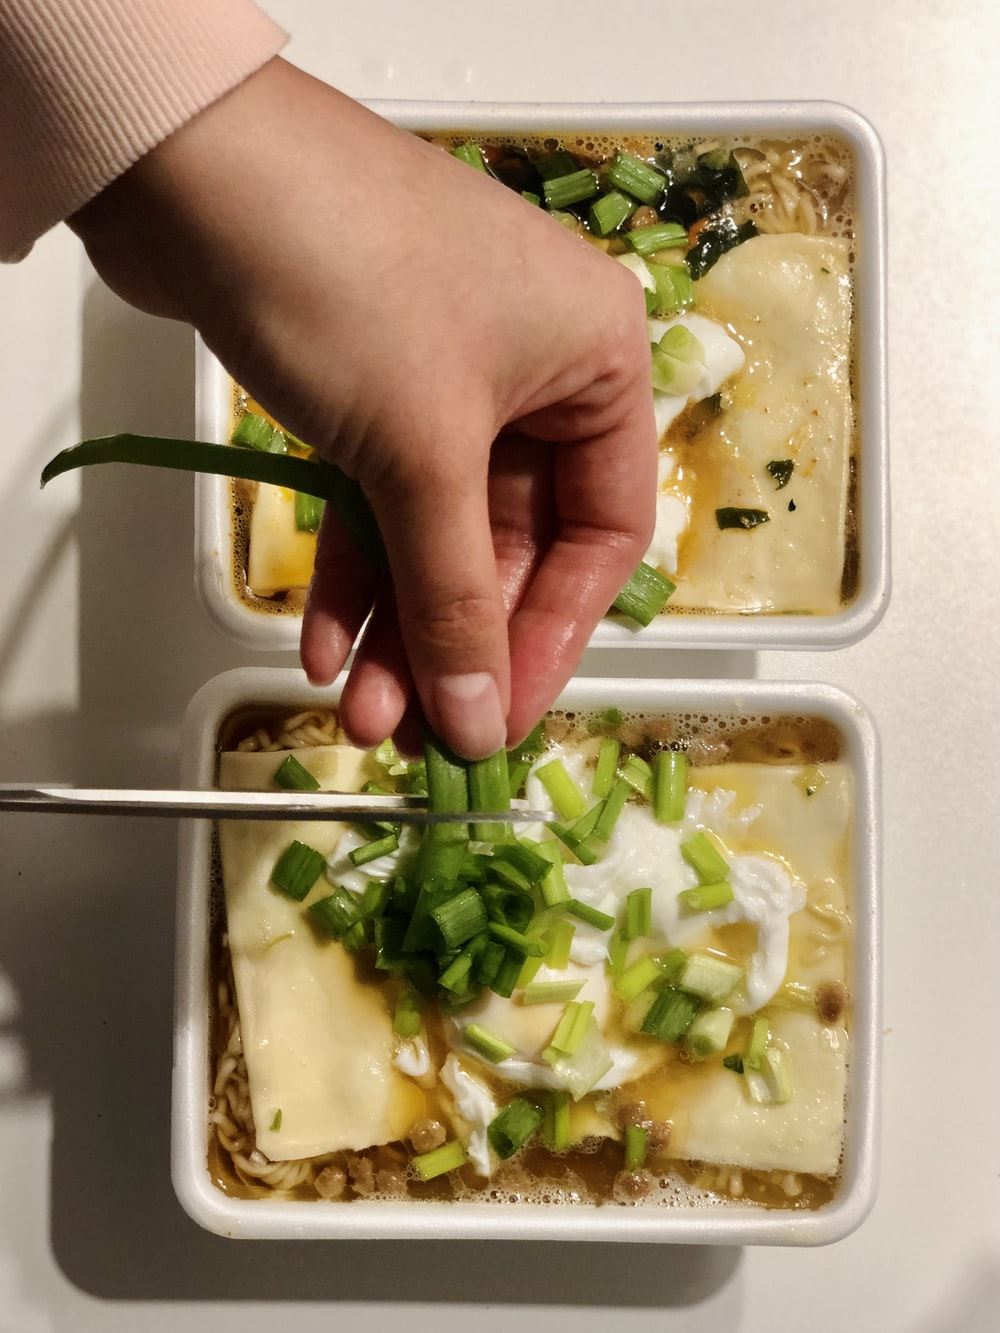 person holding green vegetable salad